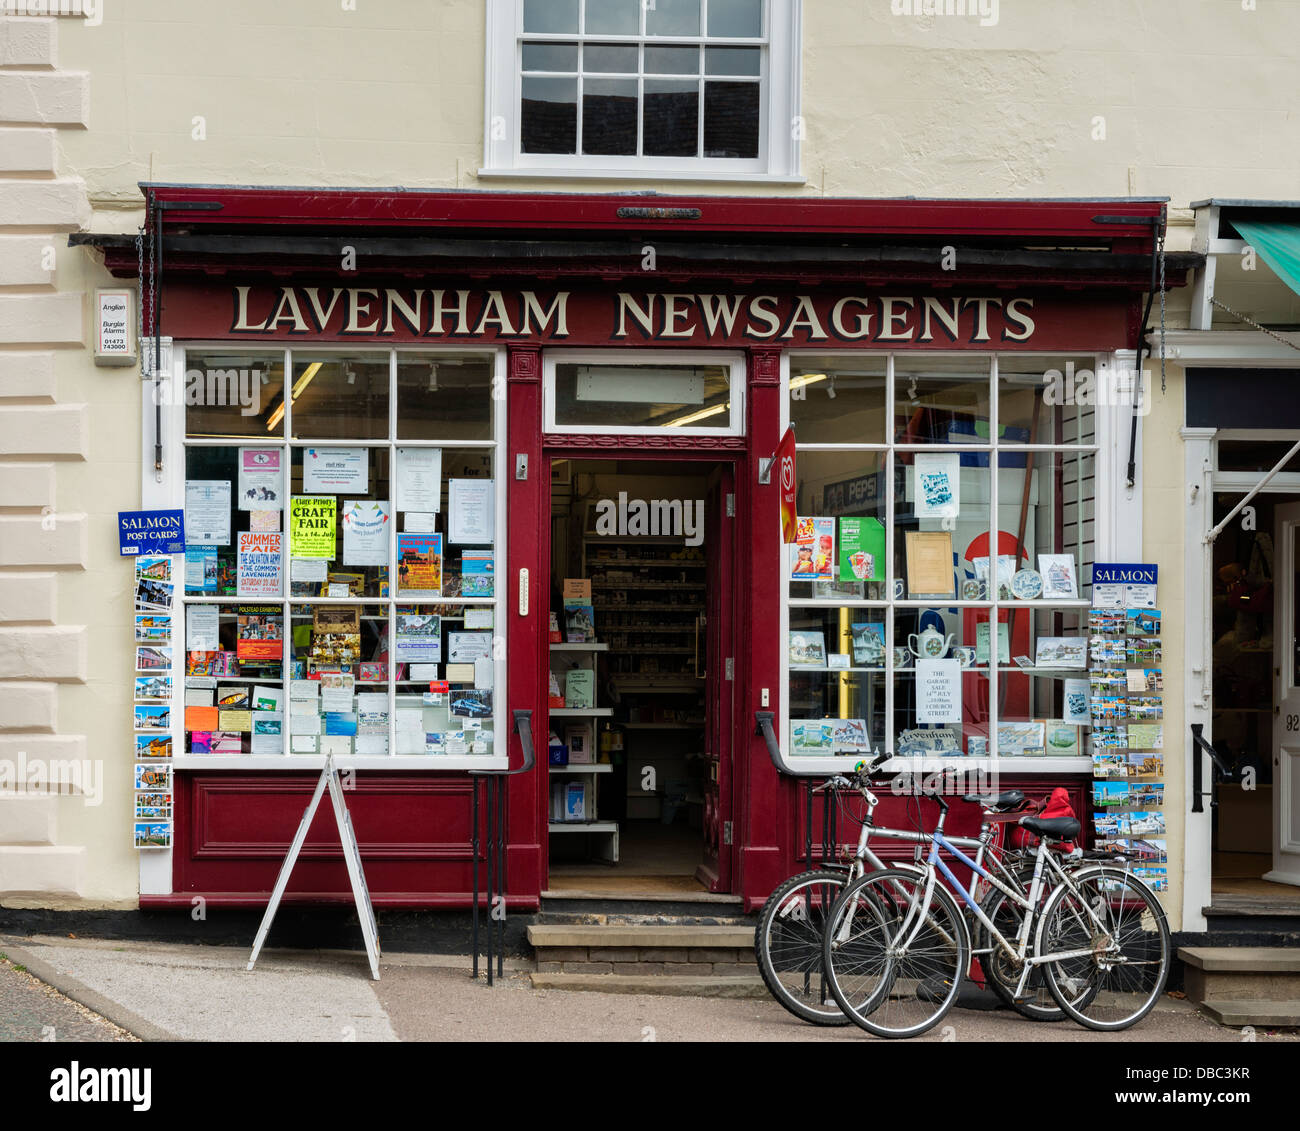 Lavenham Newsagent's Shop - Stock Image